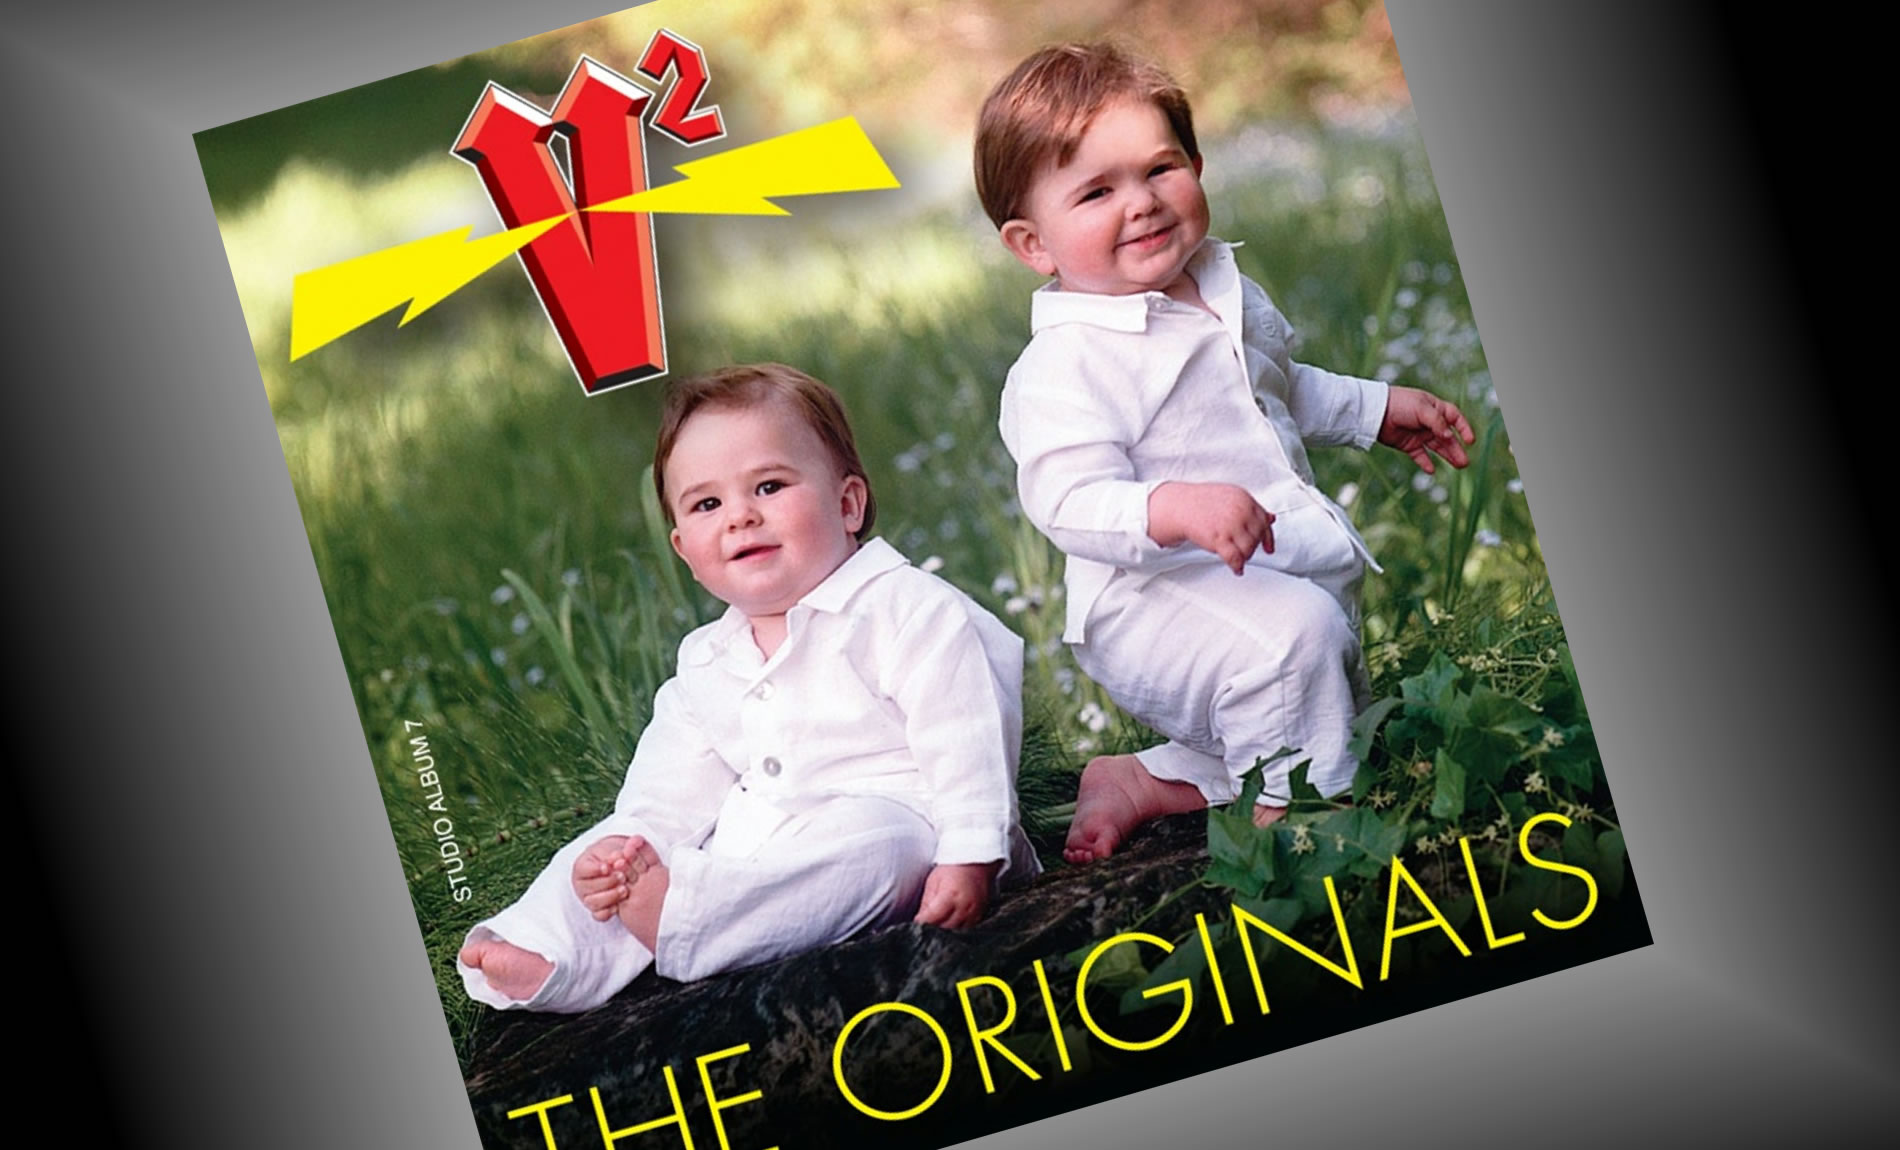 the-originals-studio-album-7-bg